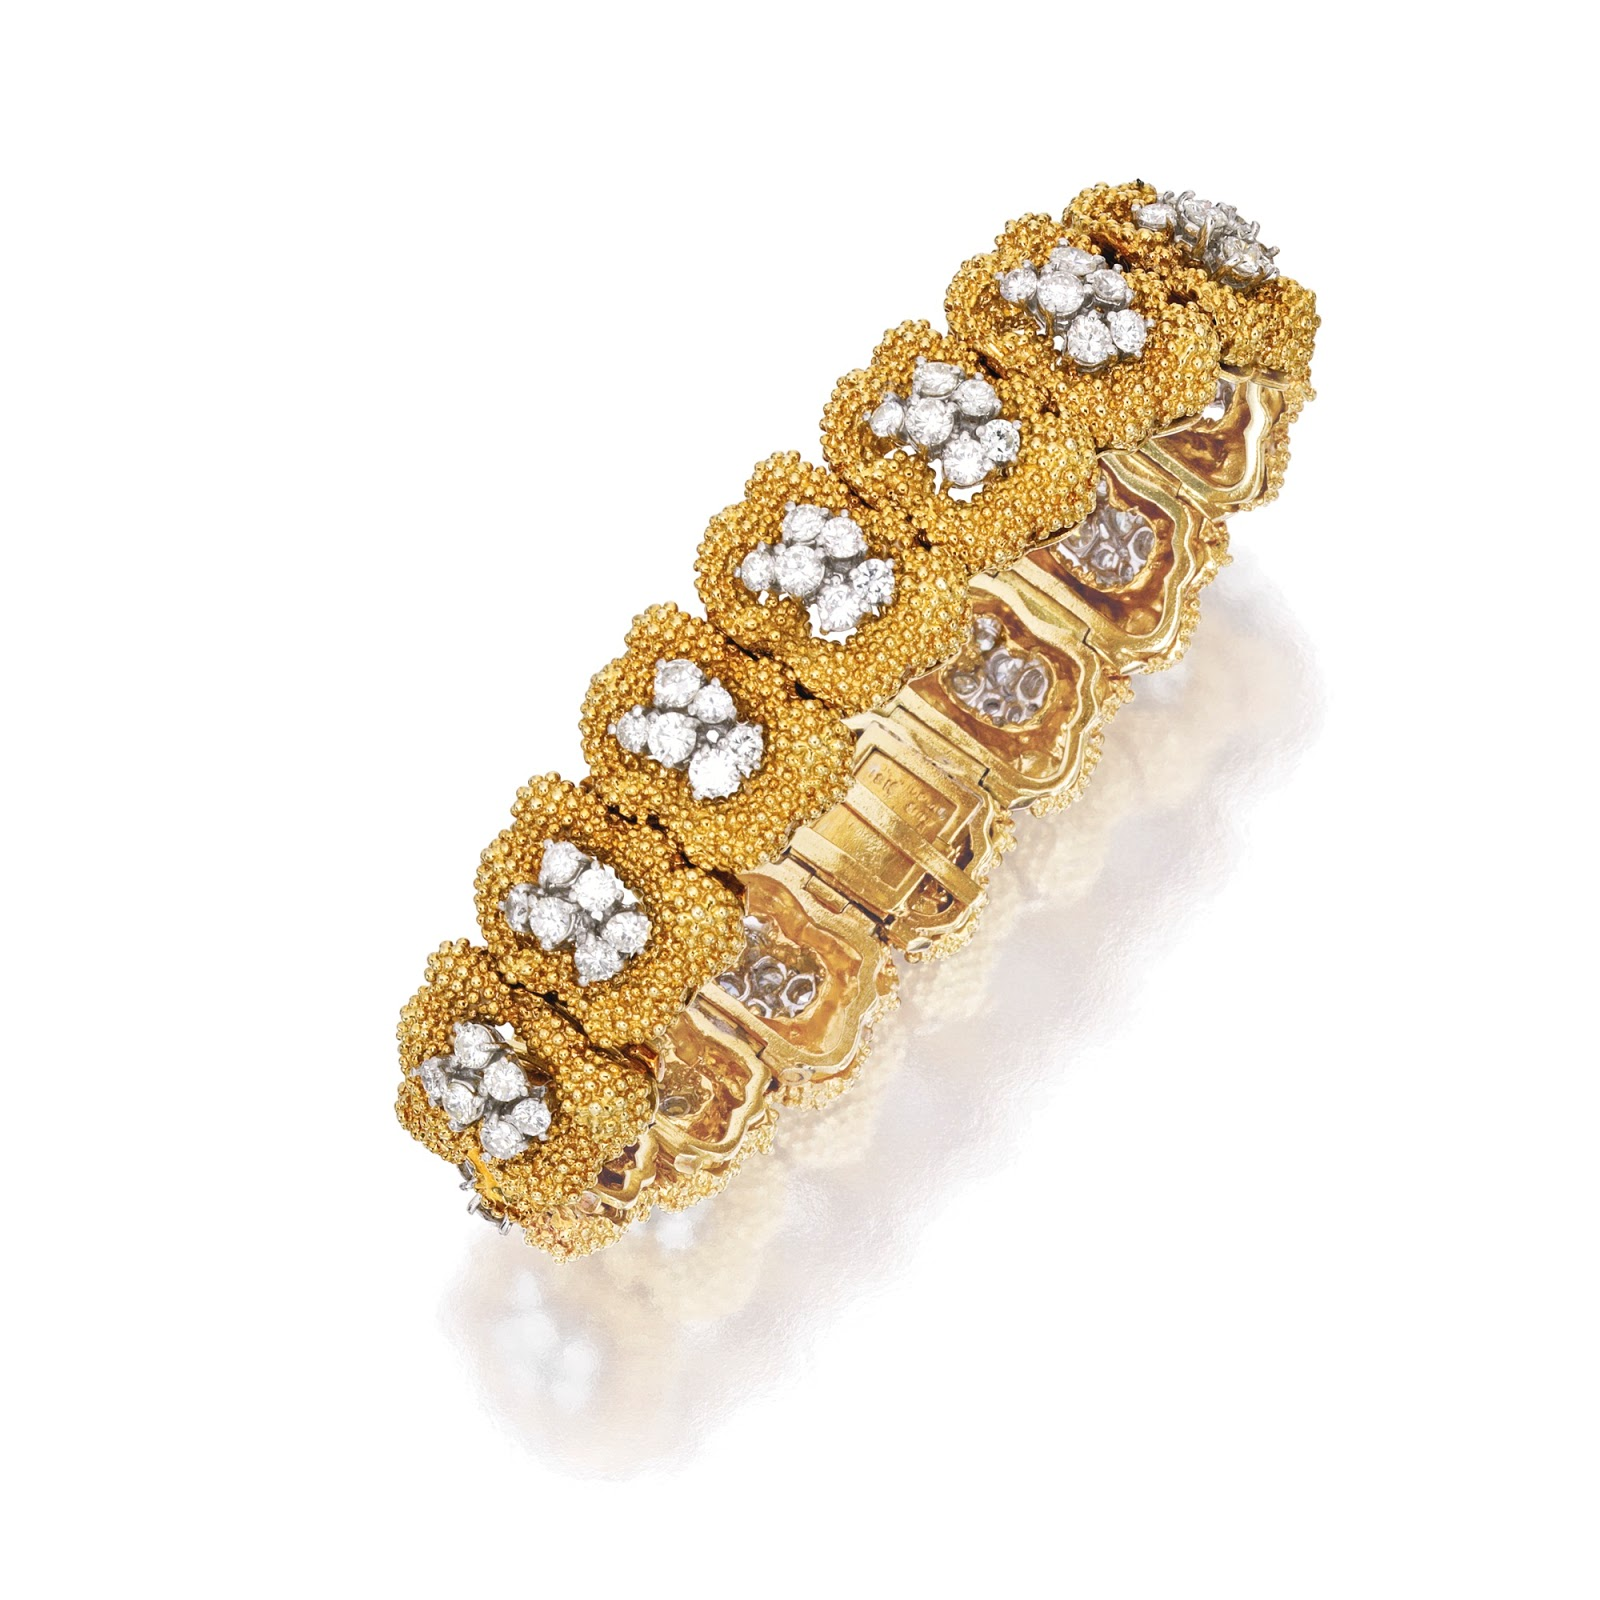 square rose cm champaign stones shaped en gold bangle crystal bracelet classy plated hires